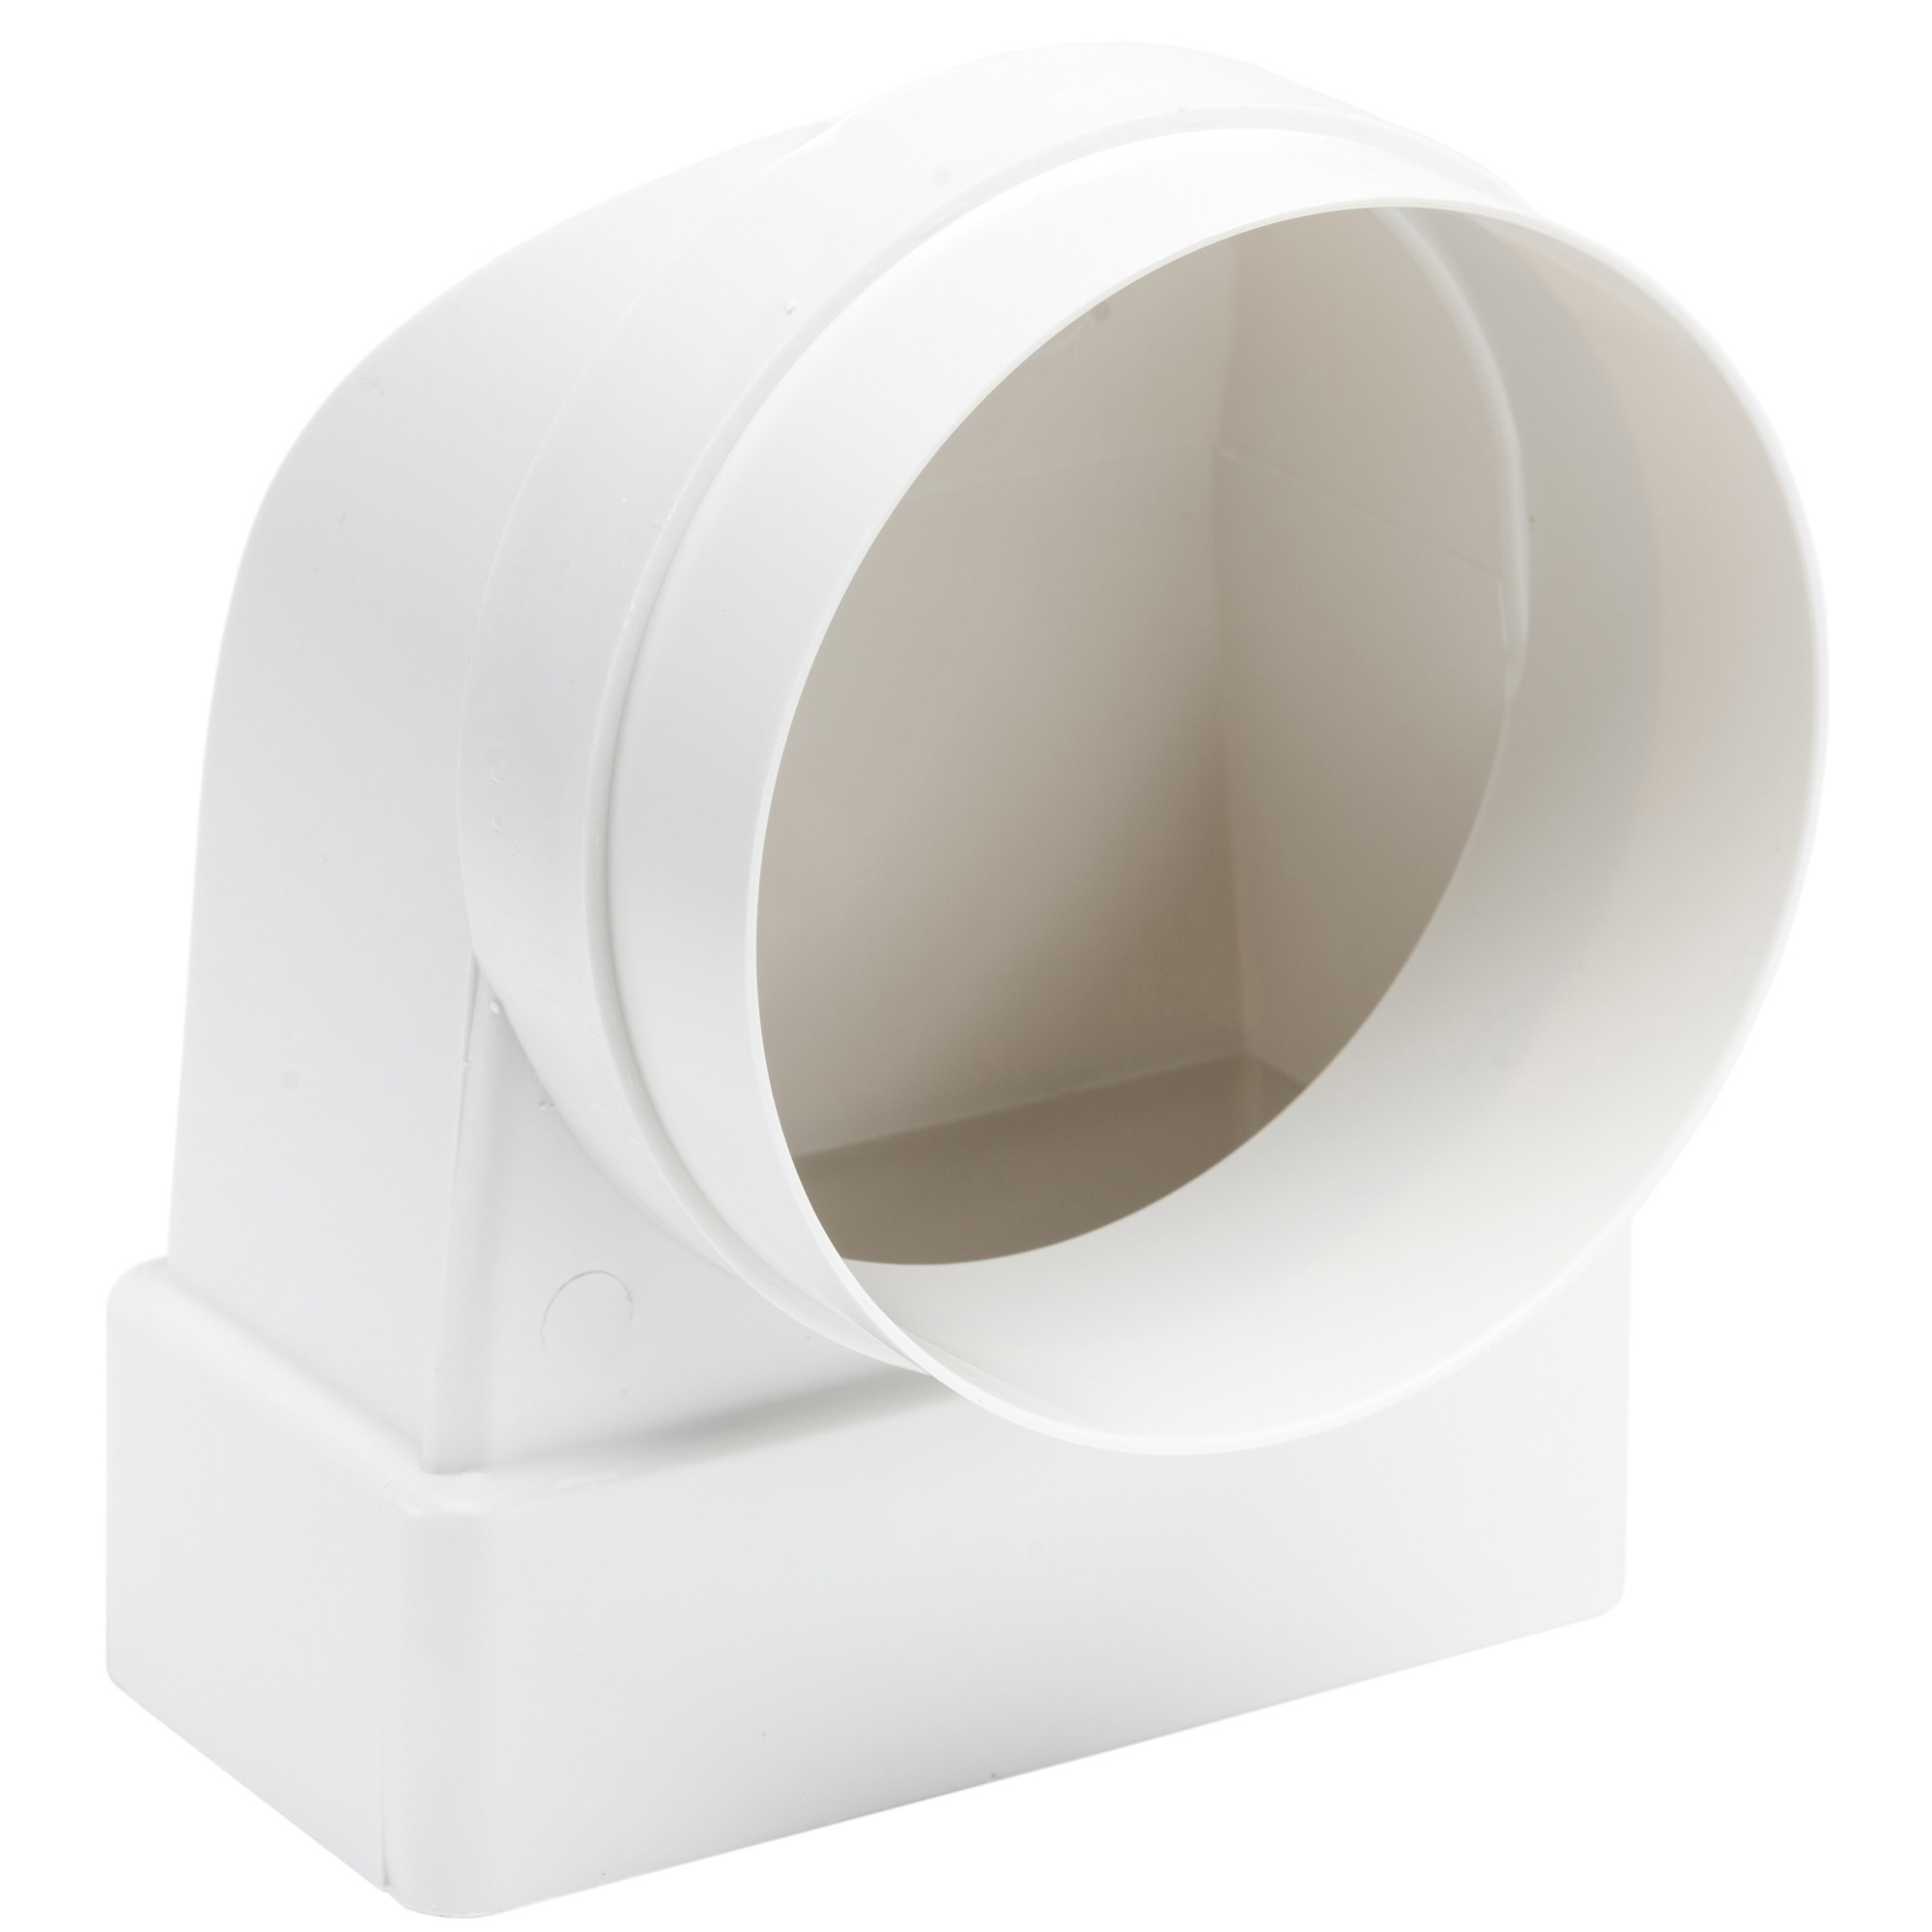 Manrose Round To Flat Ducting Pipe Elbow - White, 100mm to 204mm x 60mm